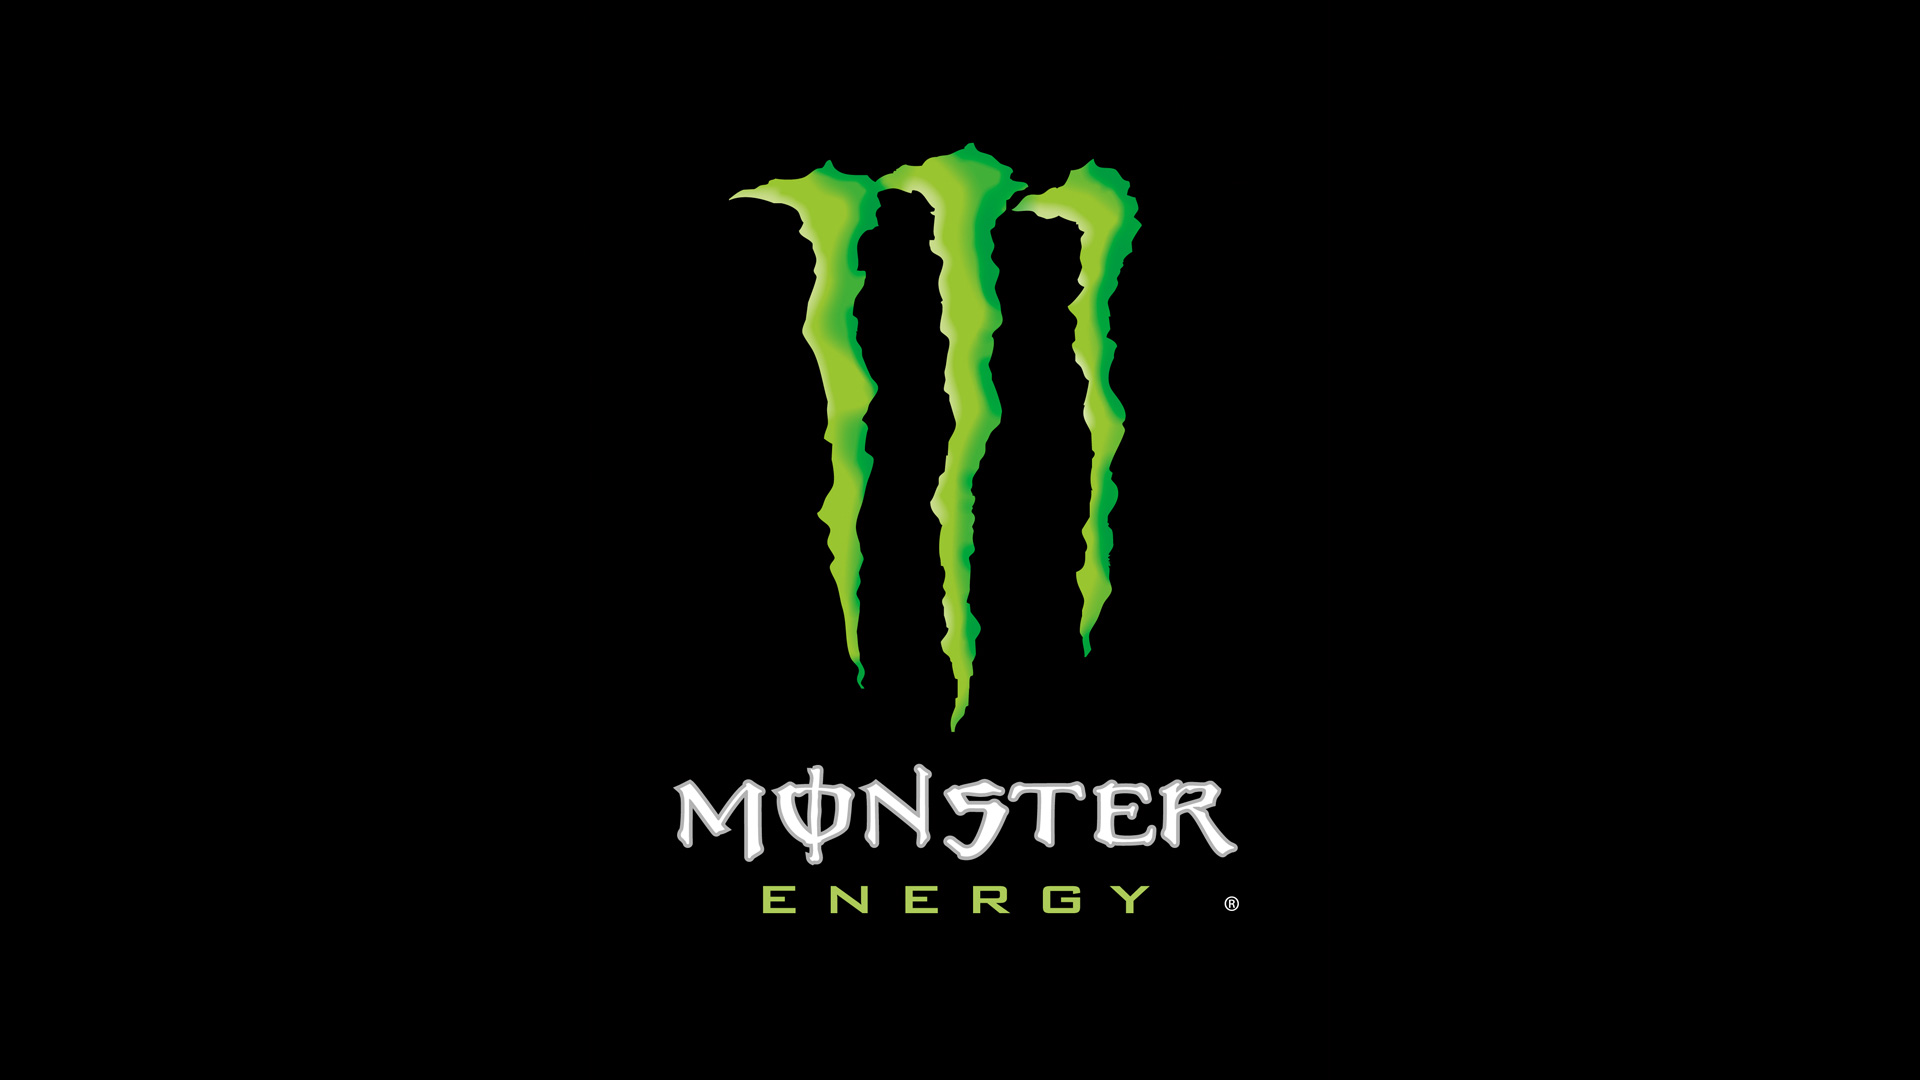 Energy wallpapers photos and desktop backgrounds up to 8k 7680x4320 resolution - Monster energy logo ...